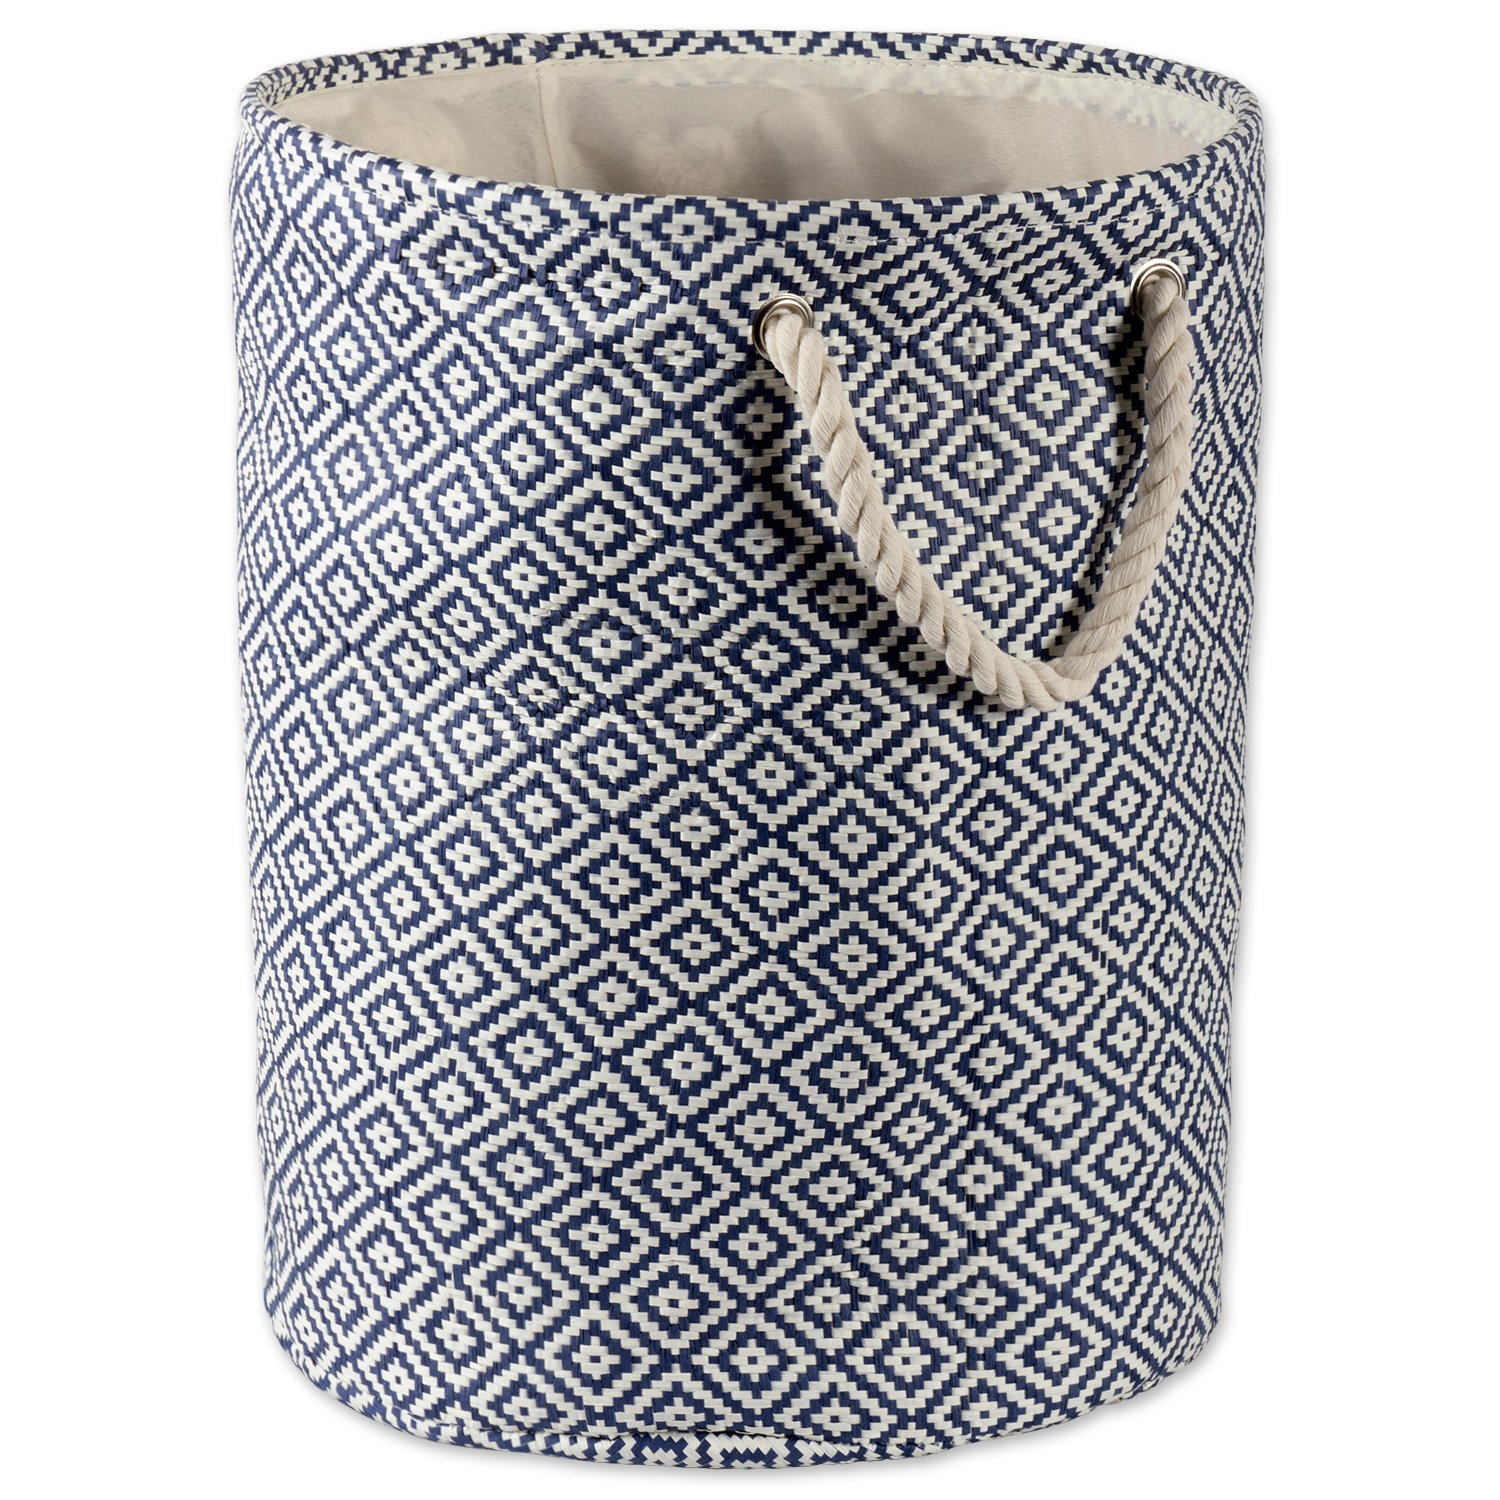 DII Woven Paper Basket or Bin, Collapsible & Convenient Organization & Storage Solution for Your Home (Large Round - 15x20) - Nautical Blue Geo Diamond